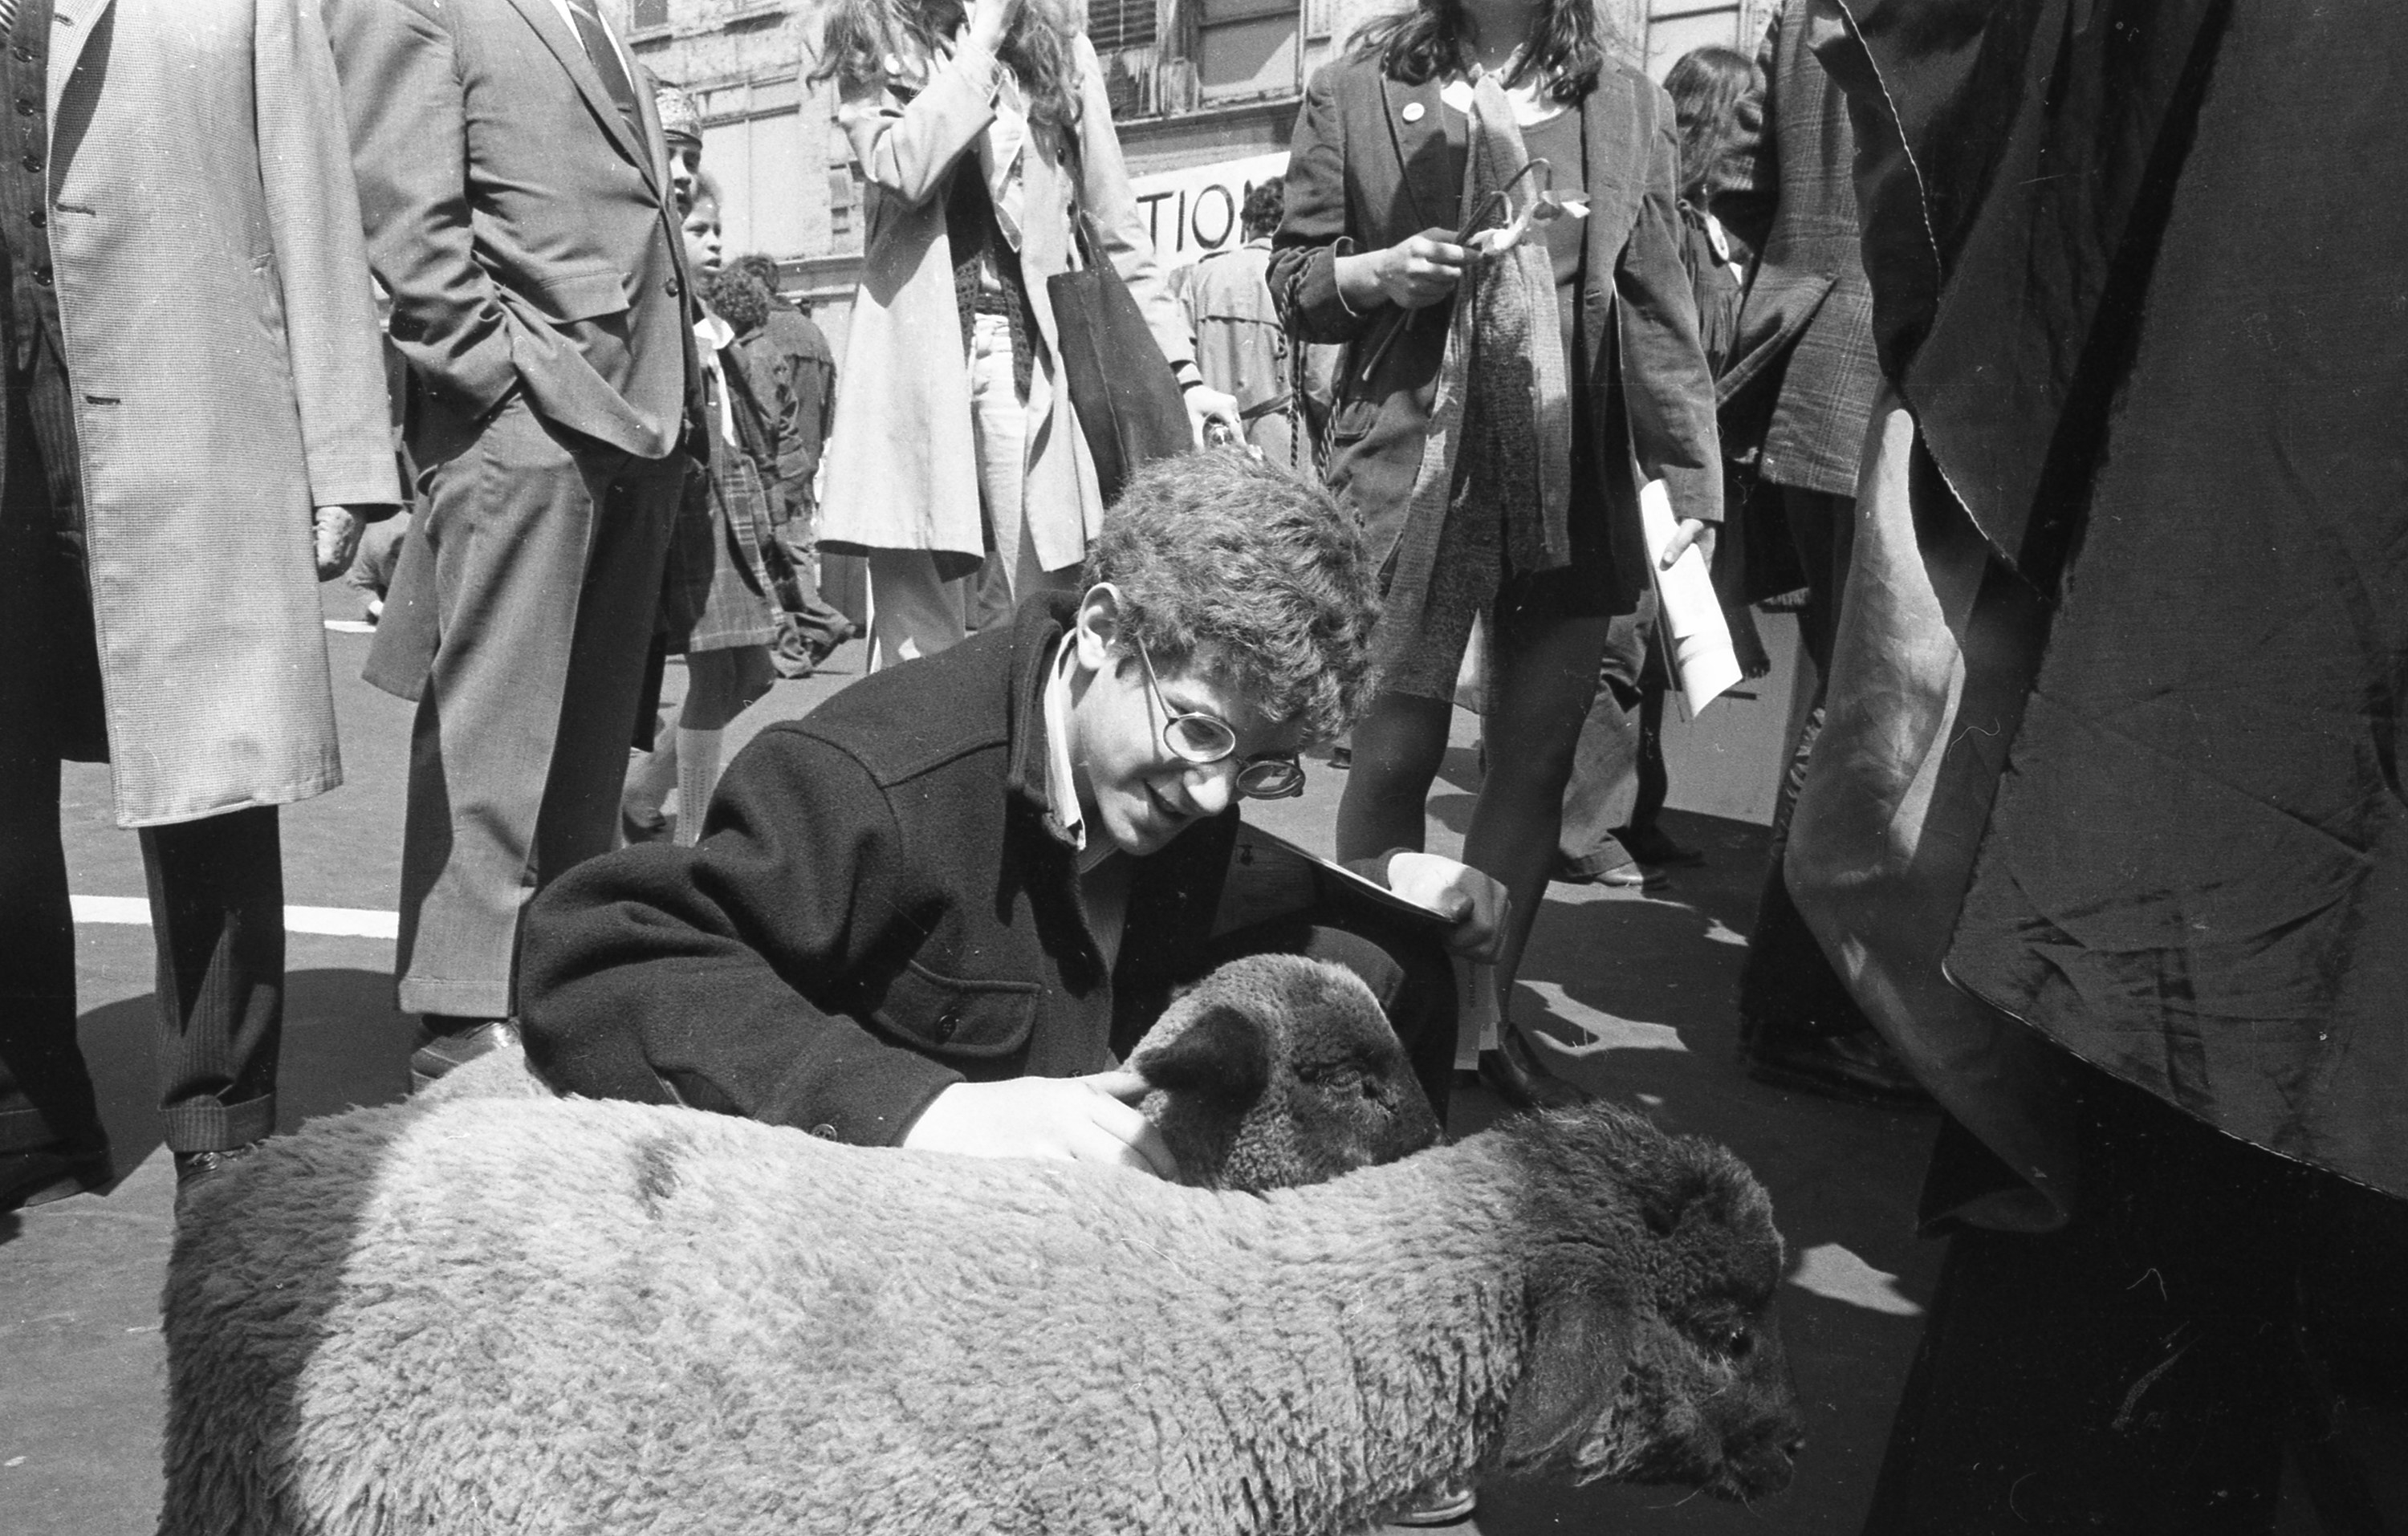 A man kneels down to pet two sheep in a crowd